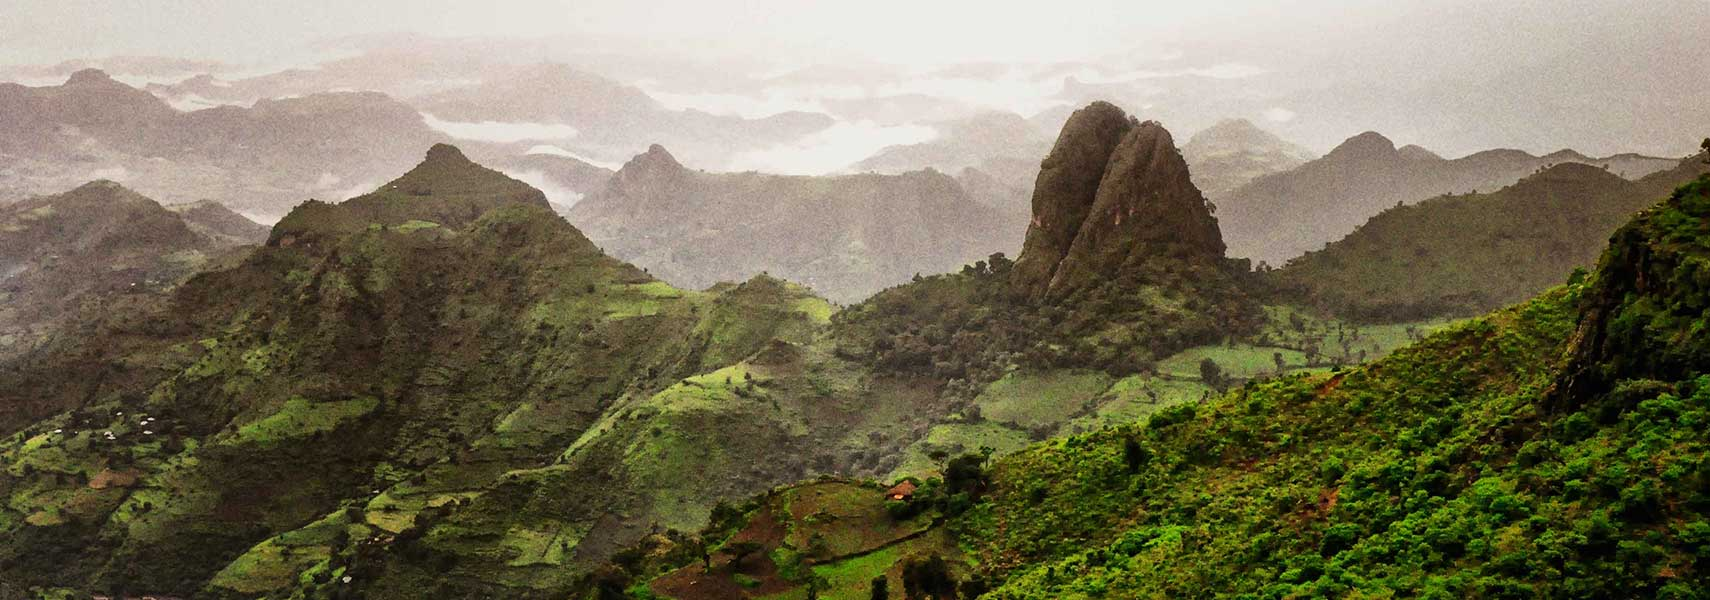 Semien Mountains, Ethiopia